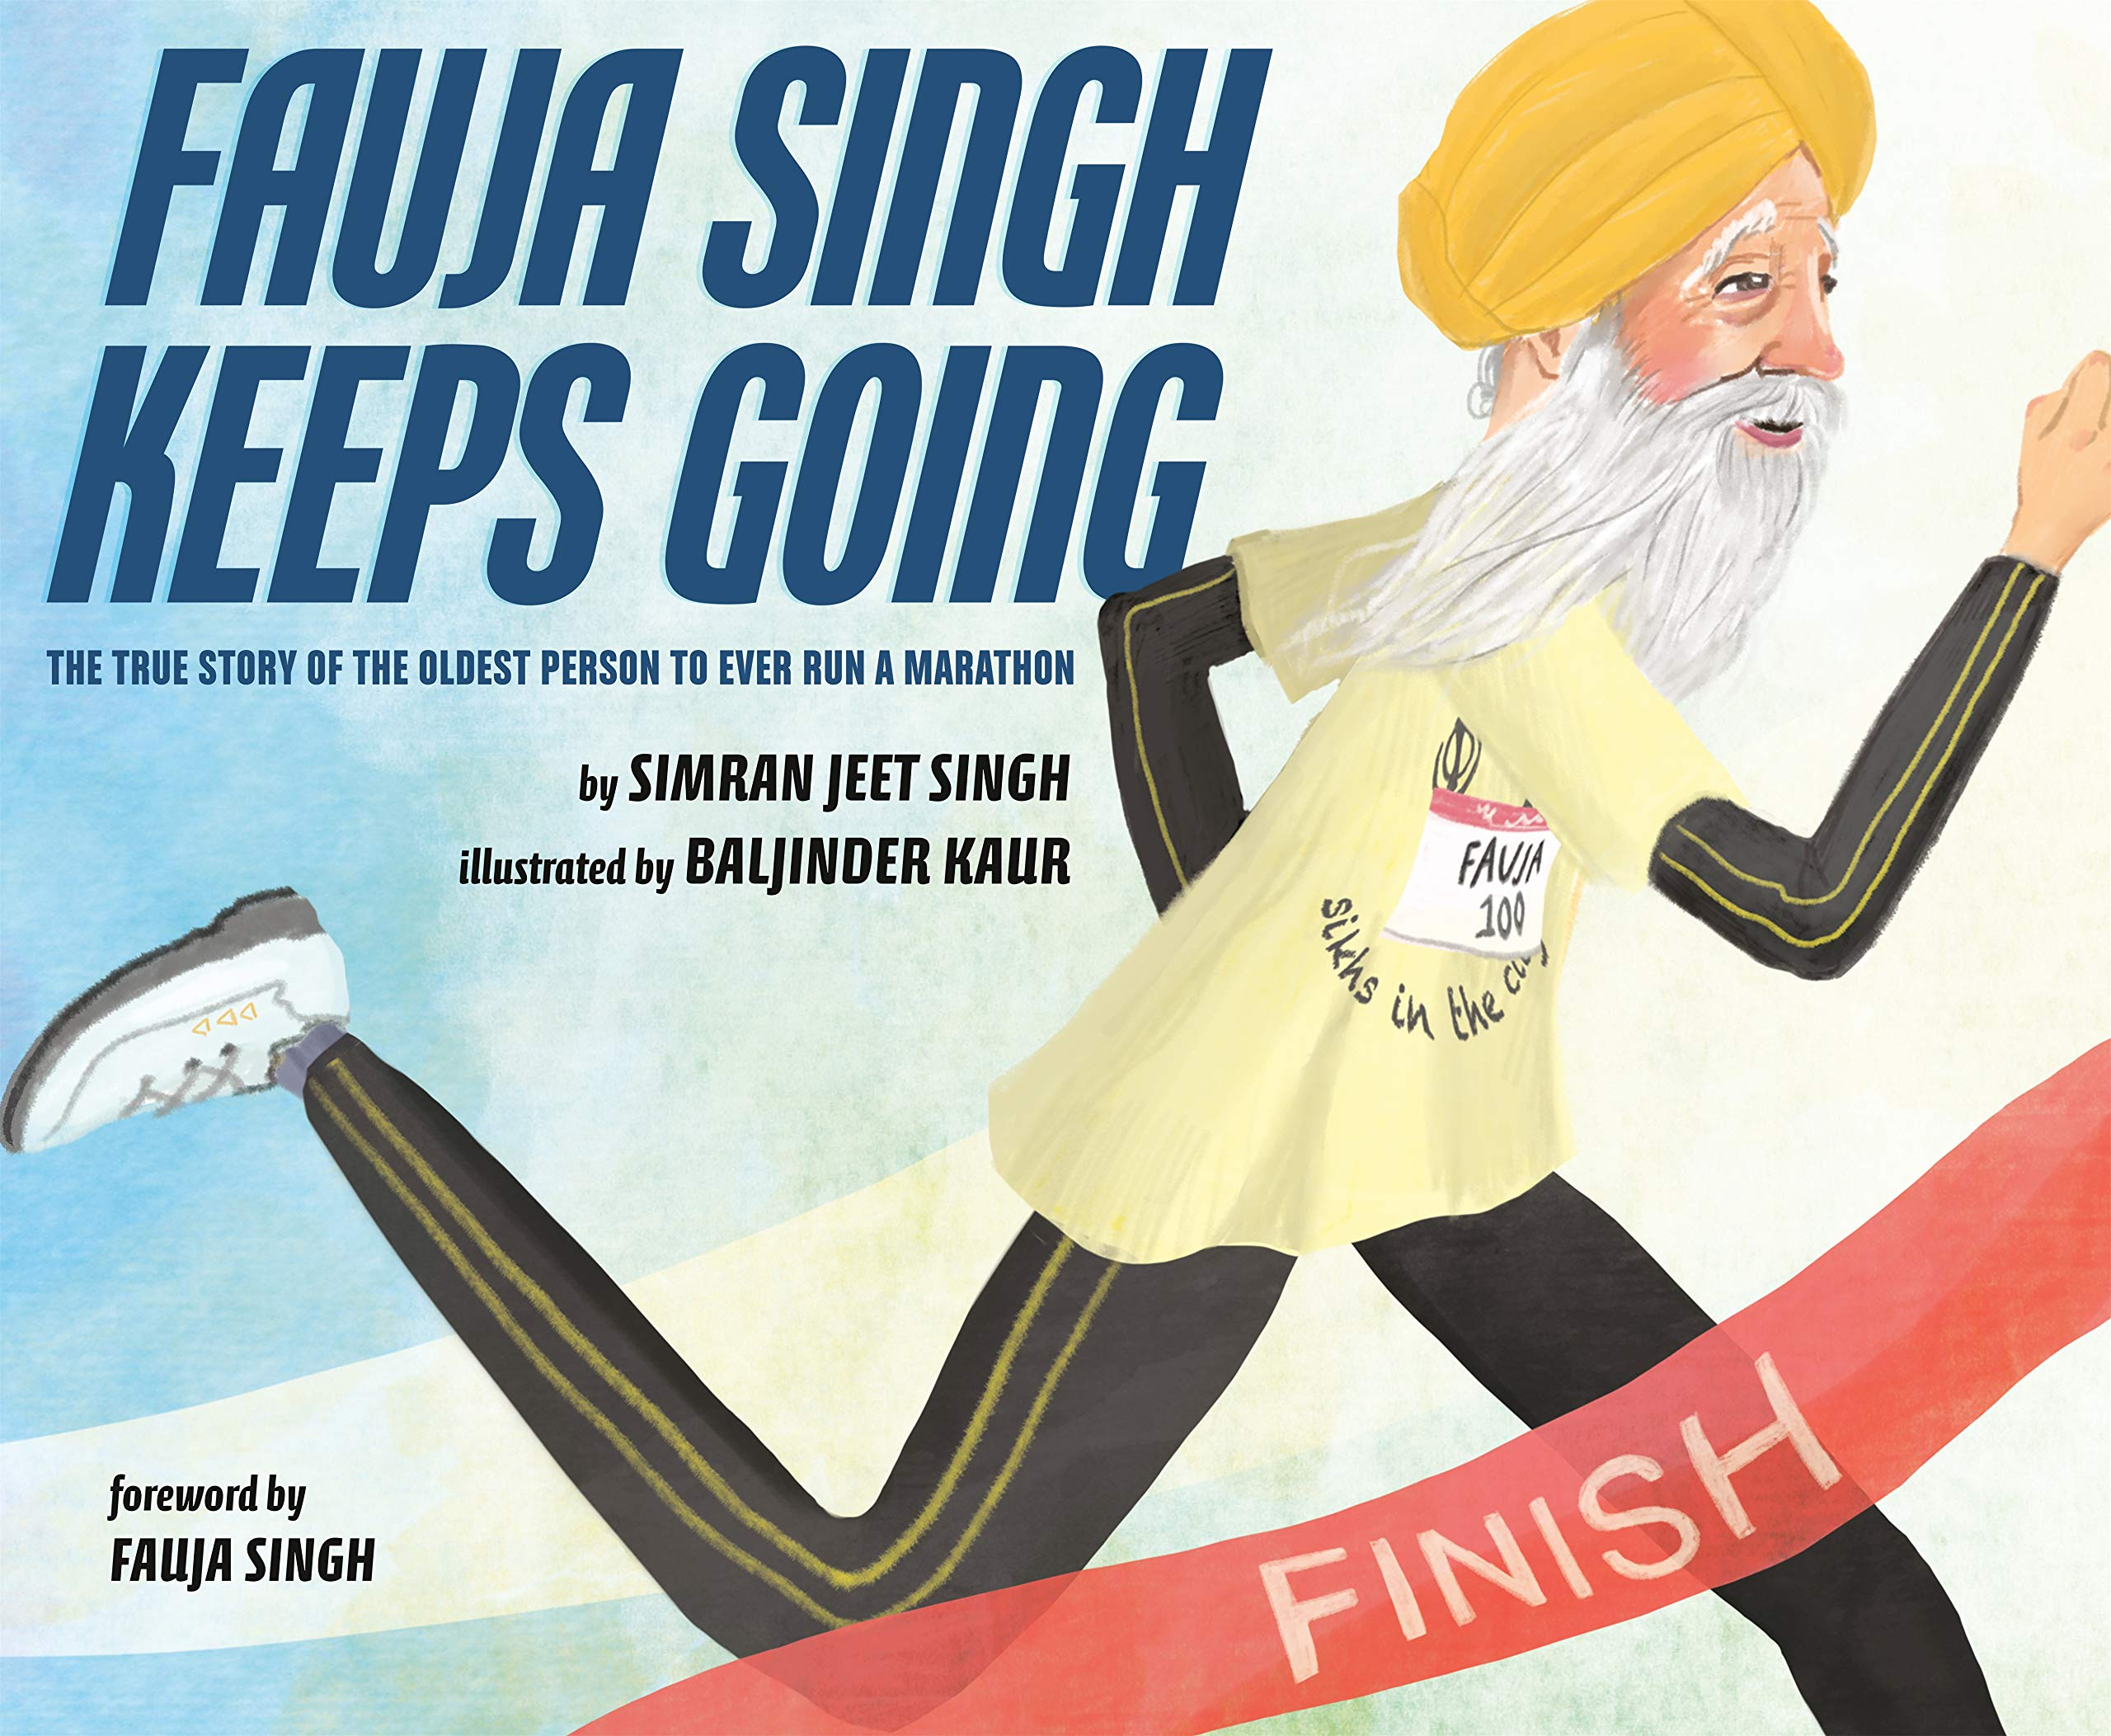 Fauja Singh Keeps Going: The True Story of the Oldest Person to Ever Run a  Marathon: Singh, Simran Jeet, Kaur, Baljinder: 9780525555094: Amazon.com:  Books